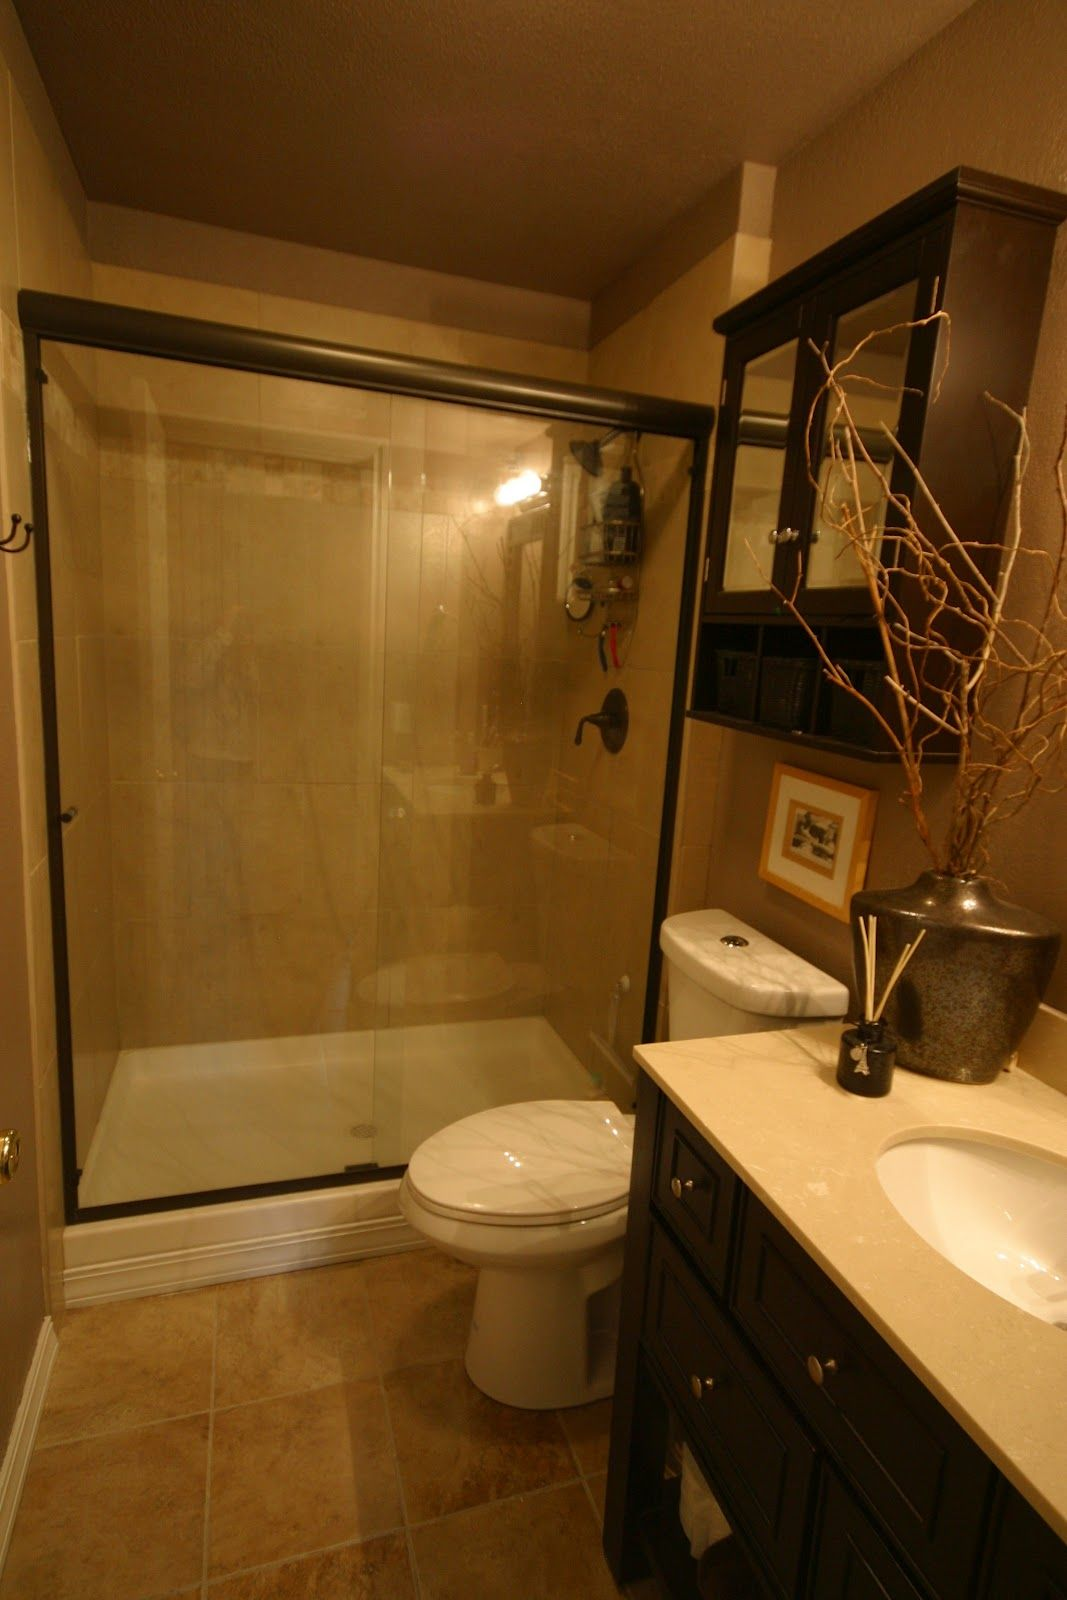 Small Bathroom Remodel Budget nice girls rule: nice girl + small budget = bathroom remodel